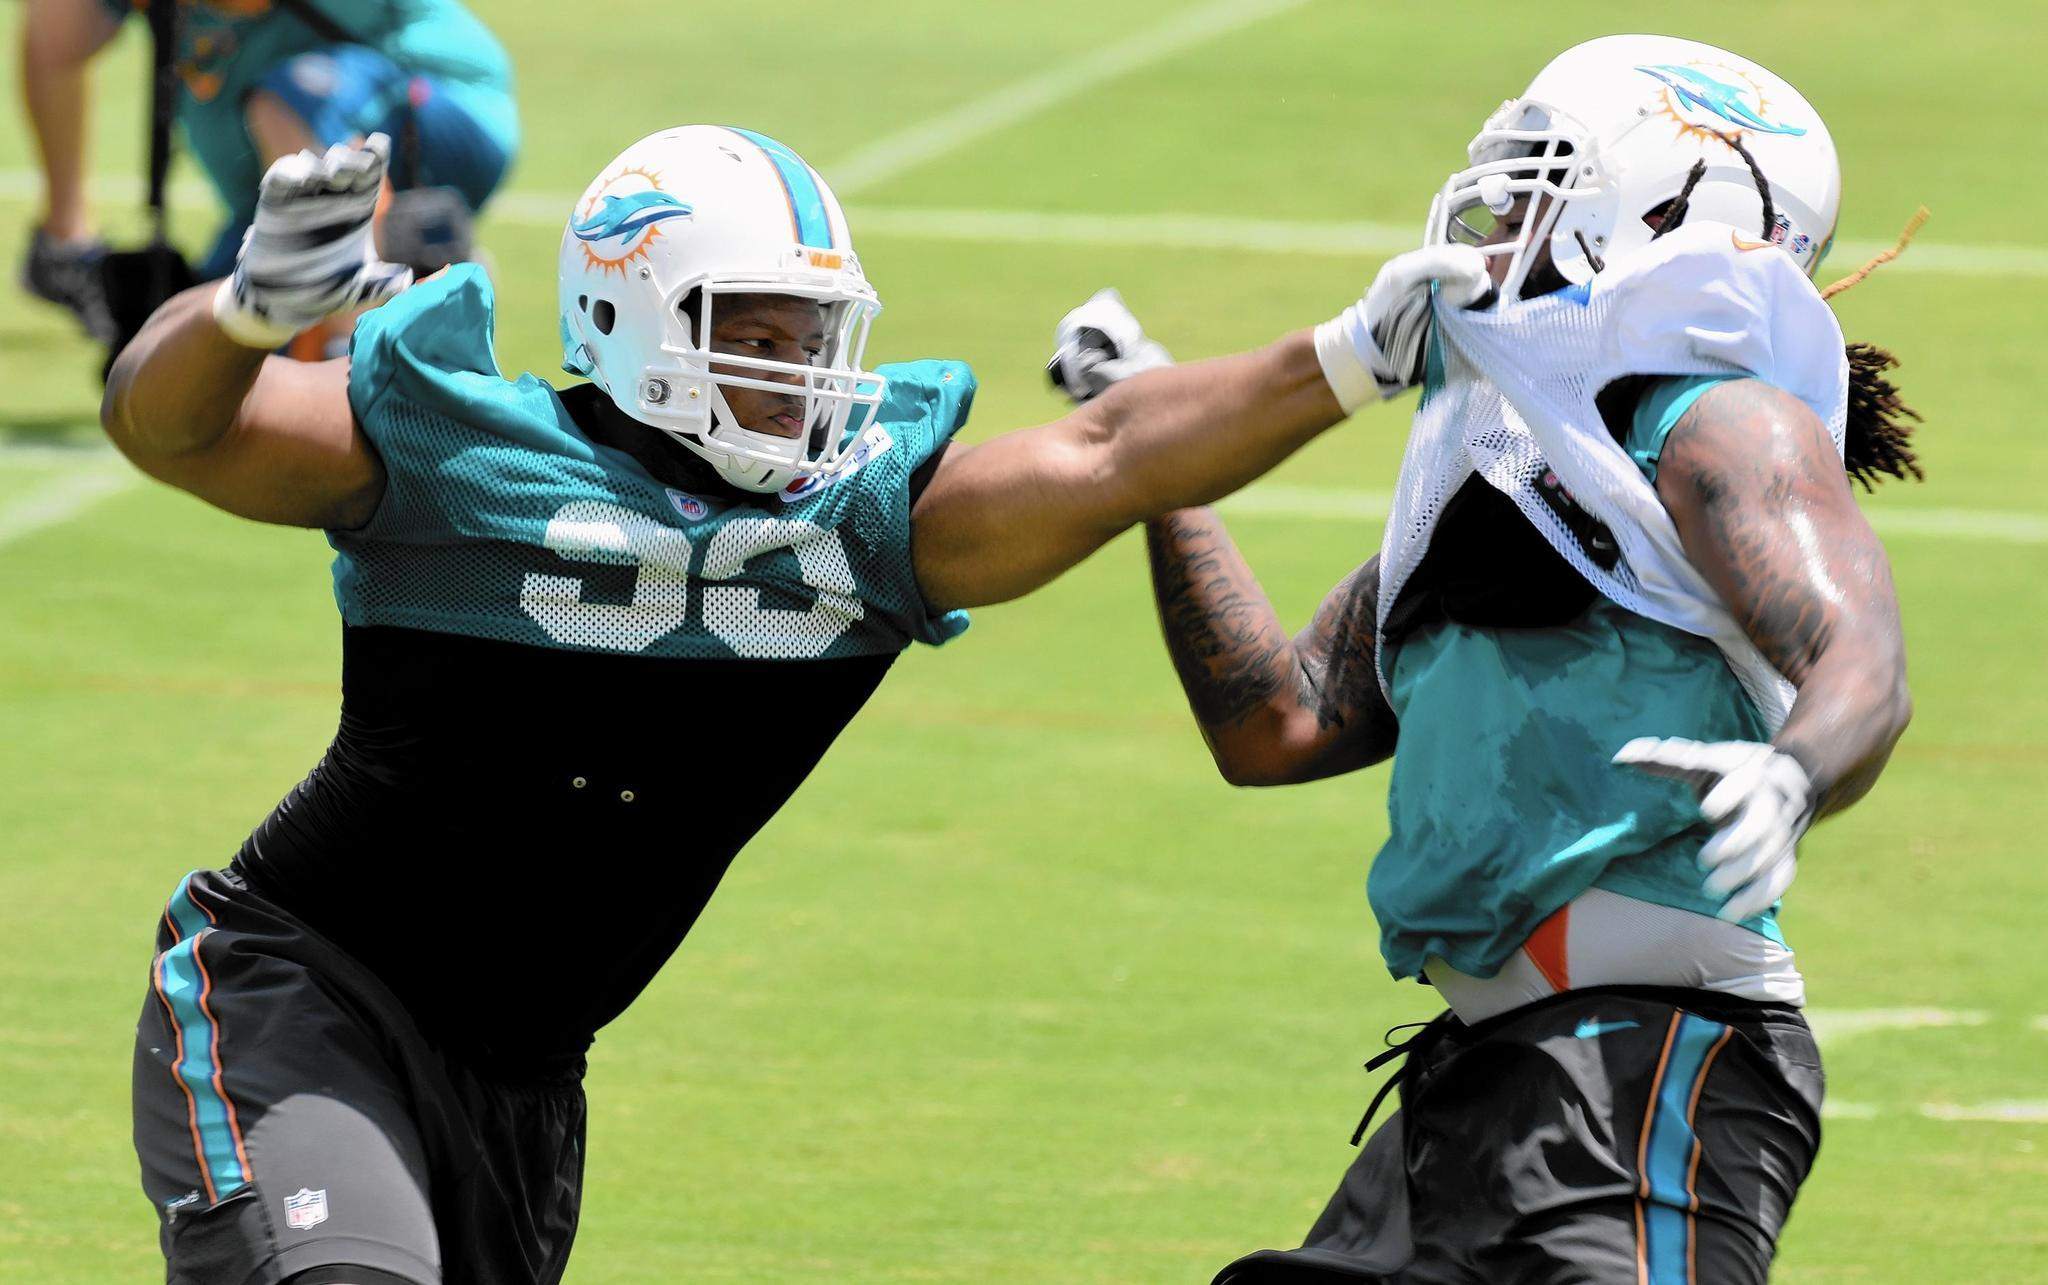 Fl-dolphins-countdown-0728-20160727